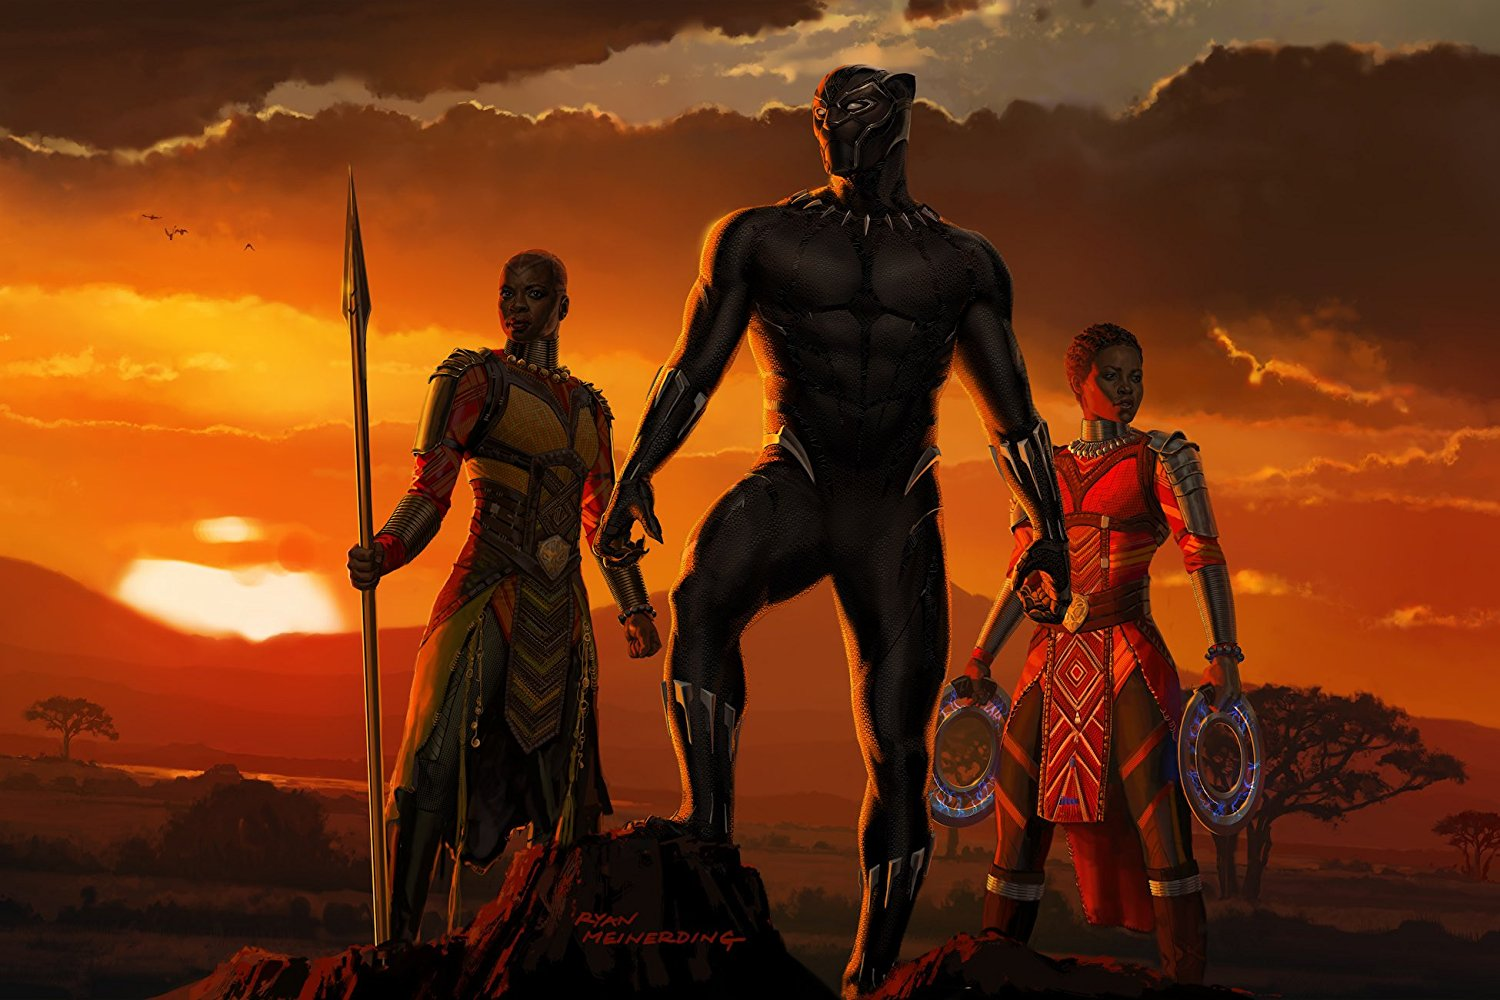 The Best Superhero Movie of 2018: Black Panther